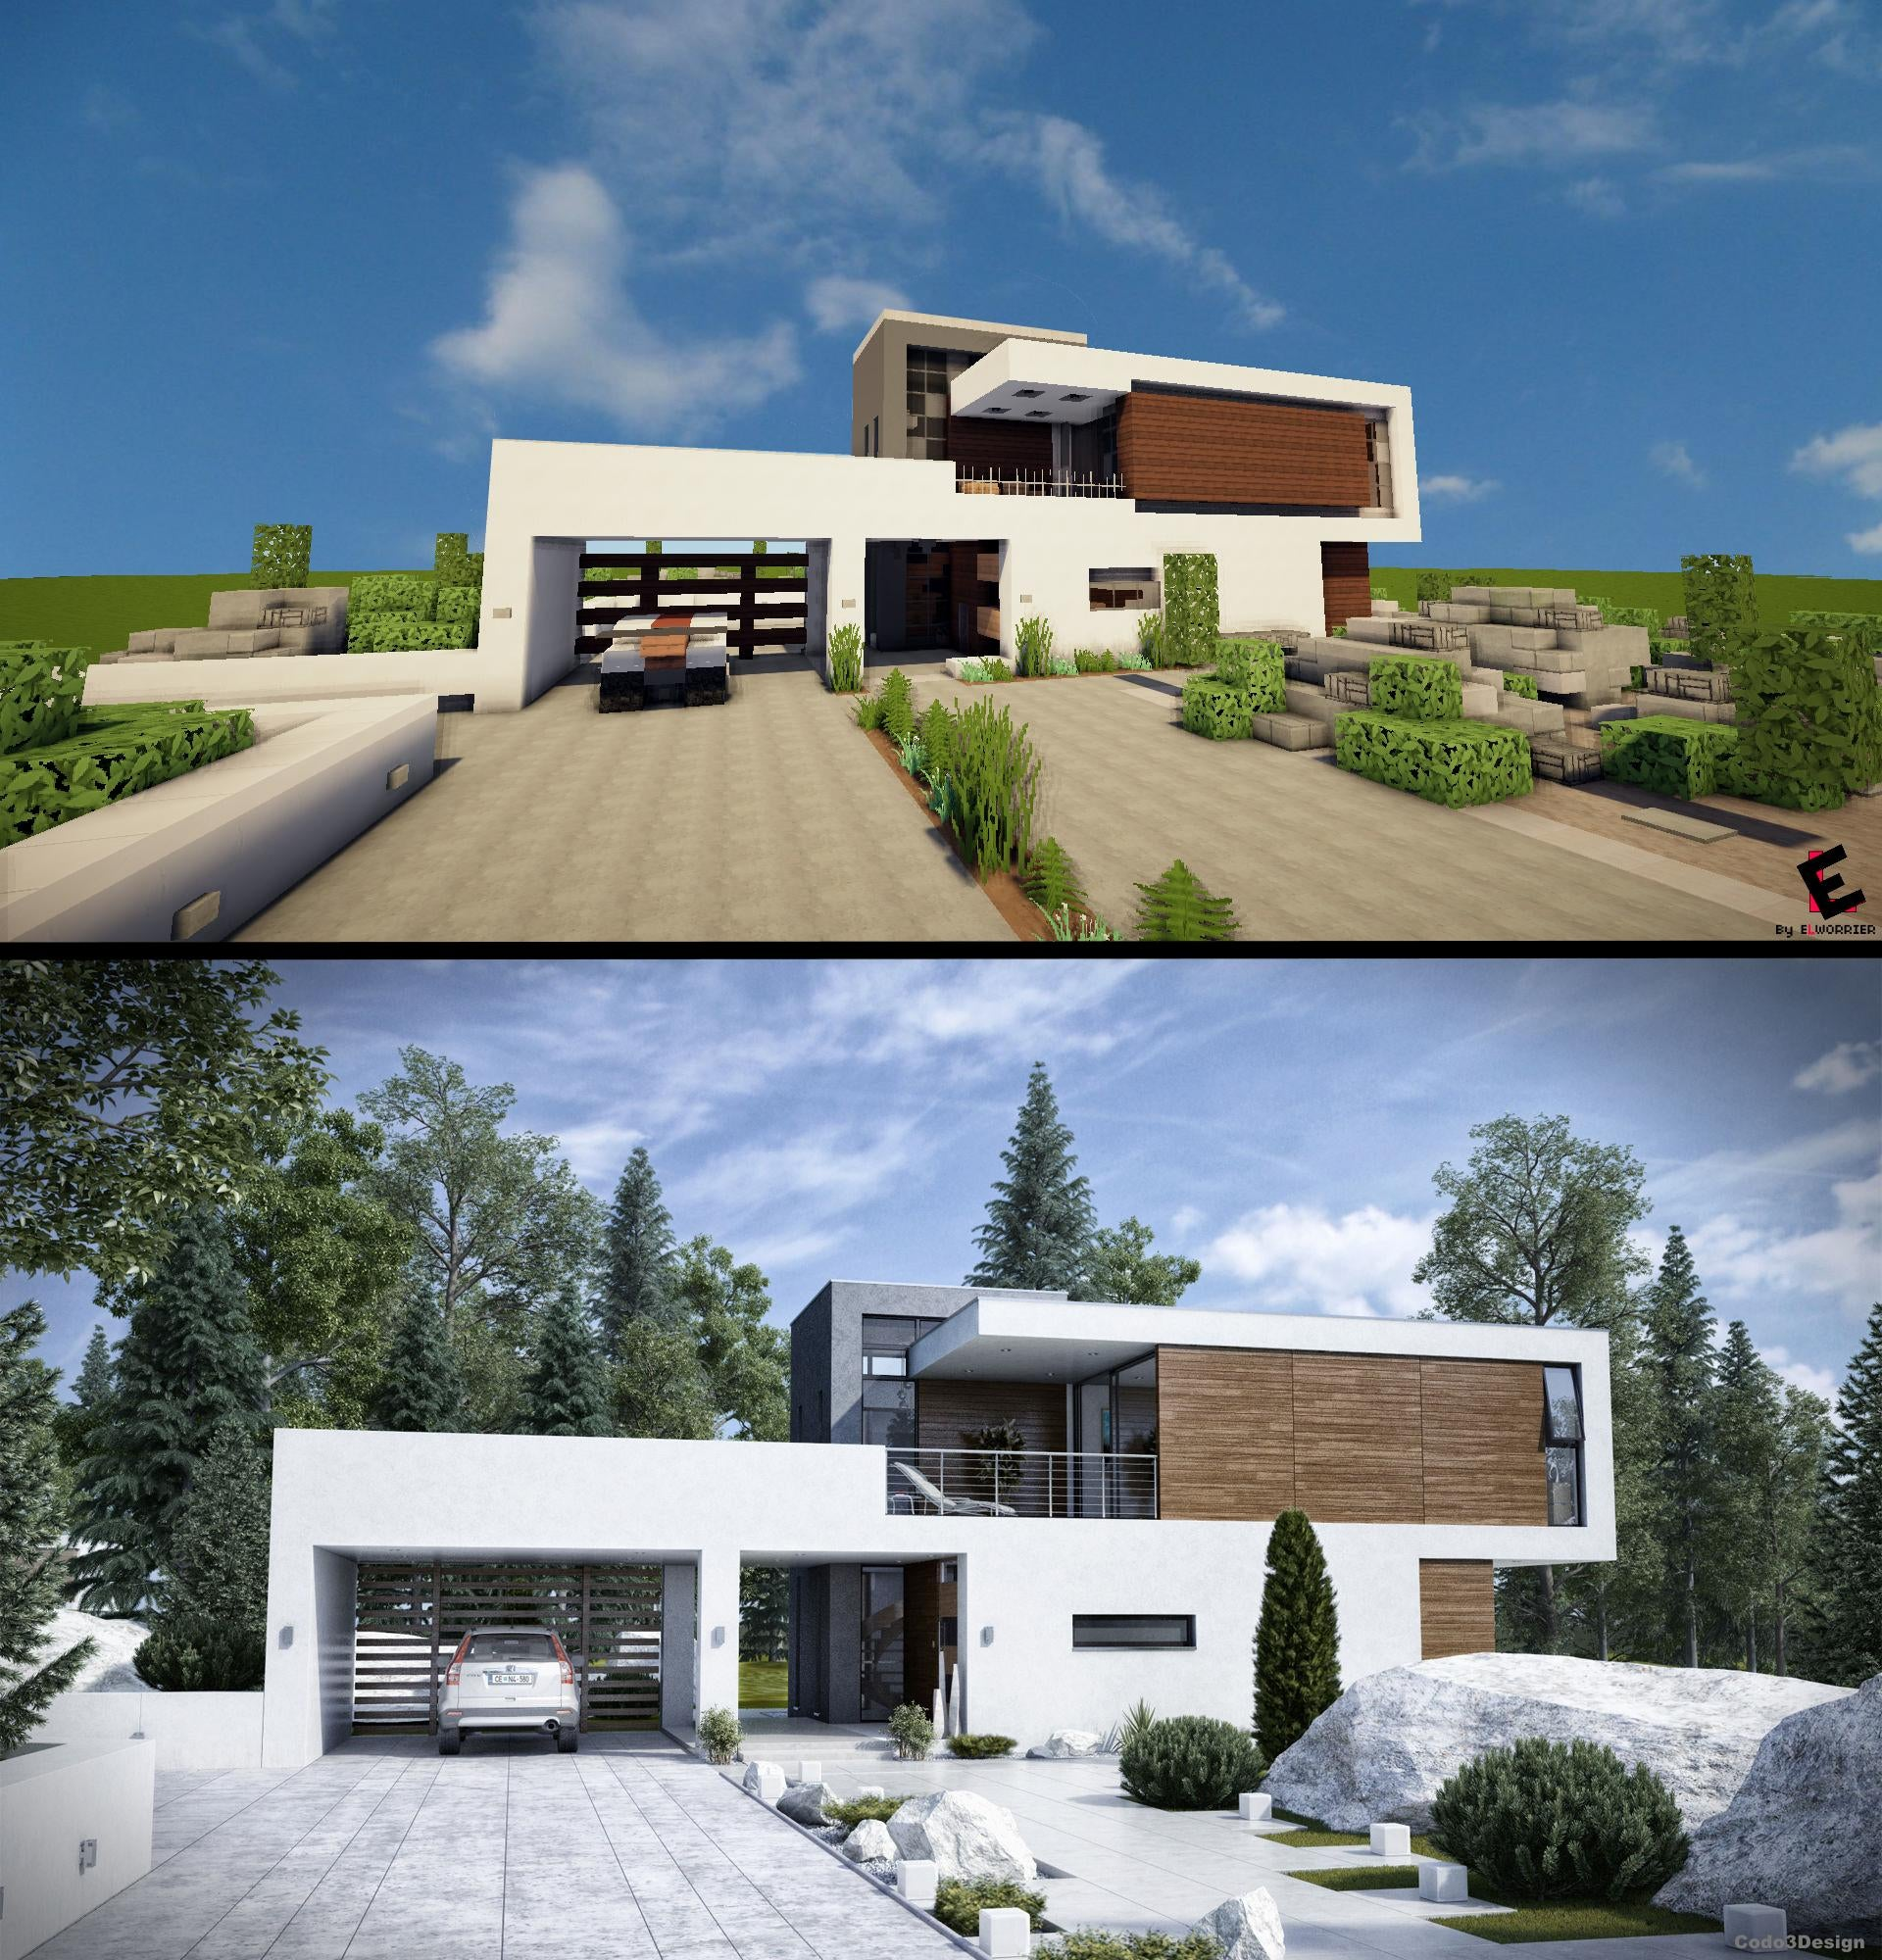 Modern House: When A Talented Minecraft Player Searches 'Modern House